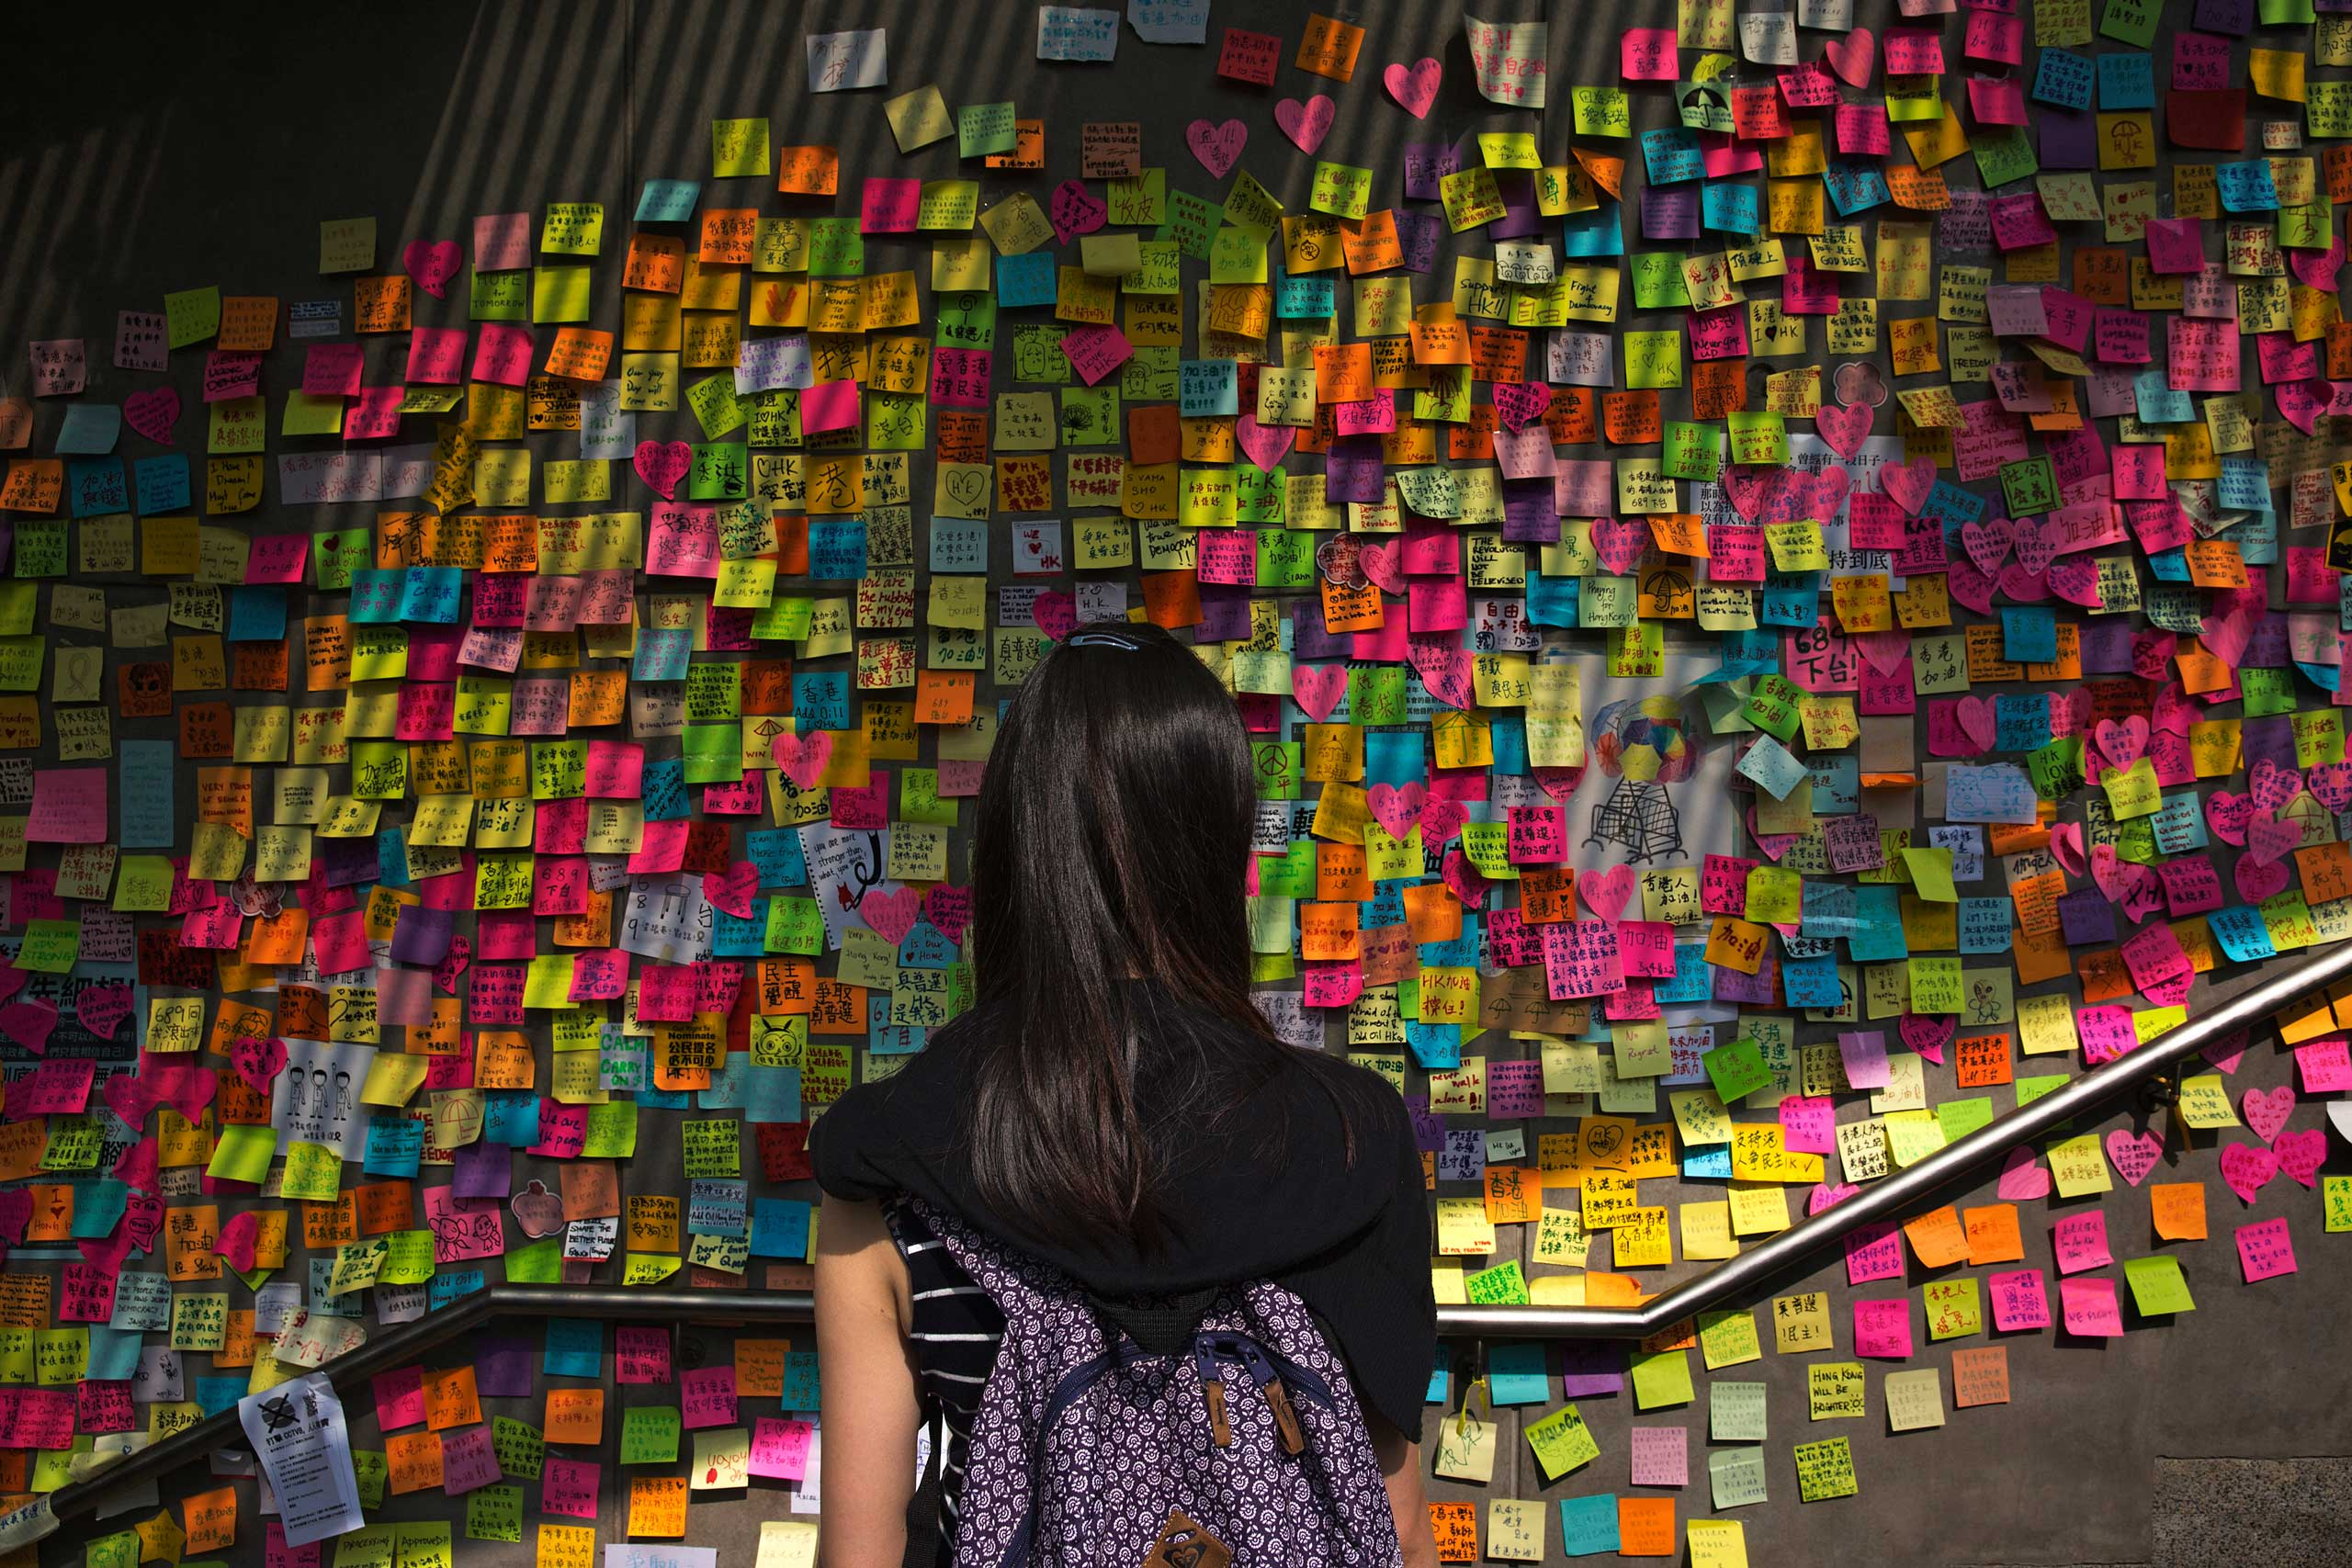 Oct. 4, 2014. A young woman pauses to read messages of encouragement, thoughts, and demands left by protesters near the government offices in Hong Kong. Tens of thousands of pro-democracy demonstrators have occupied central Hong Kong for nine days now. The unprecedented protests continue as the government and demonstrators remain in a stalemate. From  A New Generation Speaks.  October 20, 2014 issue.